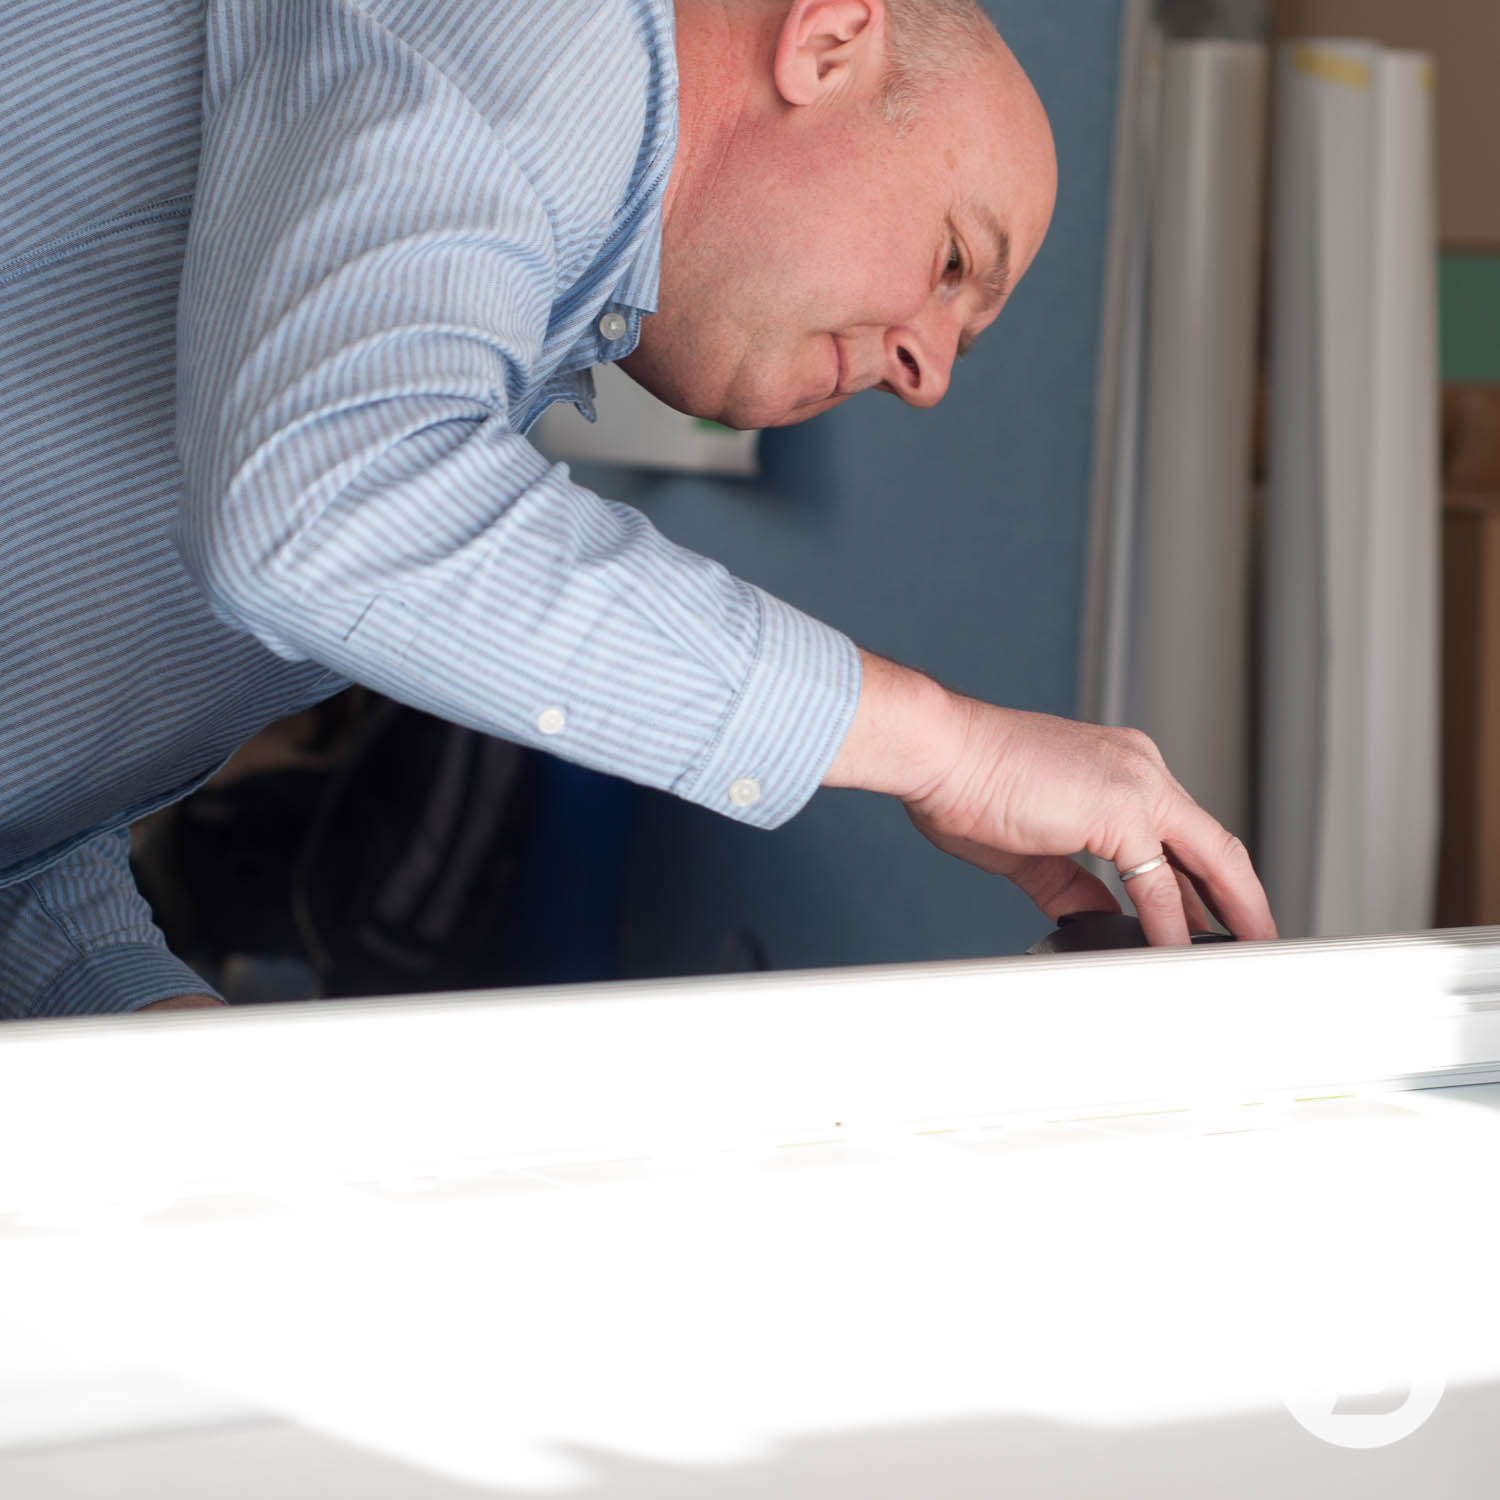 Ian Best - Professional and personal - After decades of experience in the print industry, I have the expert knowledge and know-how for every type of print project that lands on my desk.